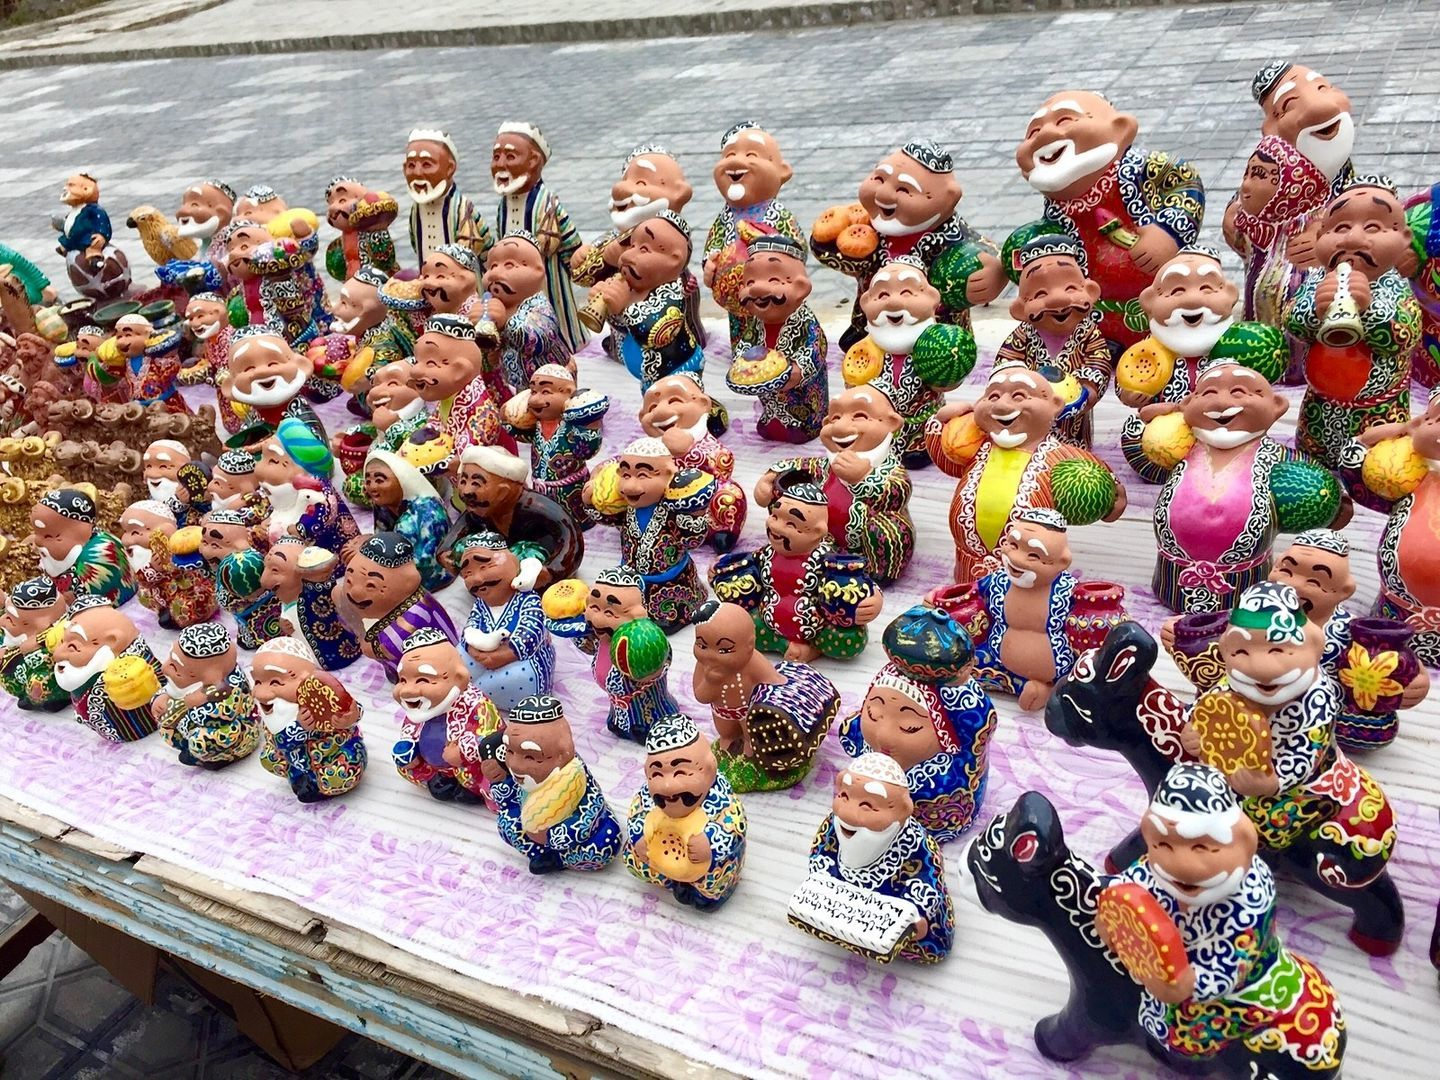 souvenirs of colorful Uzbek statues